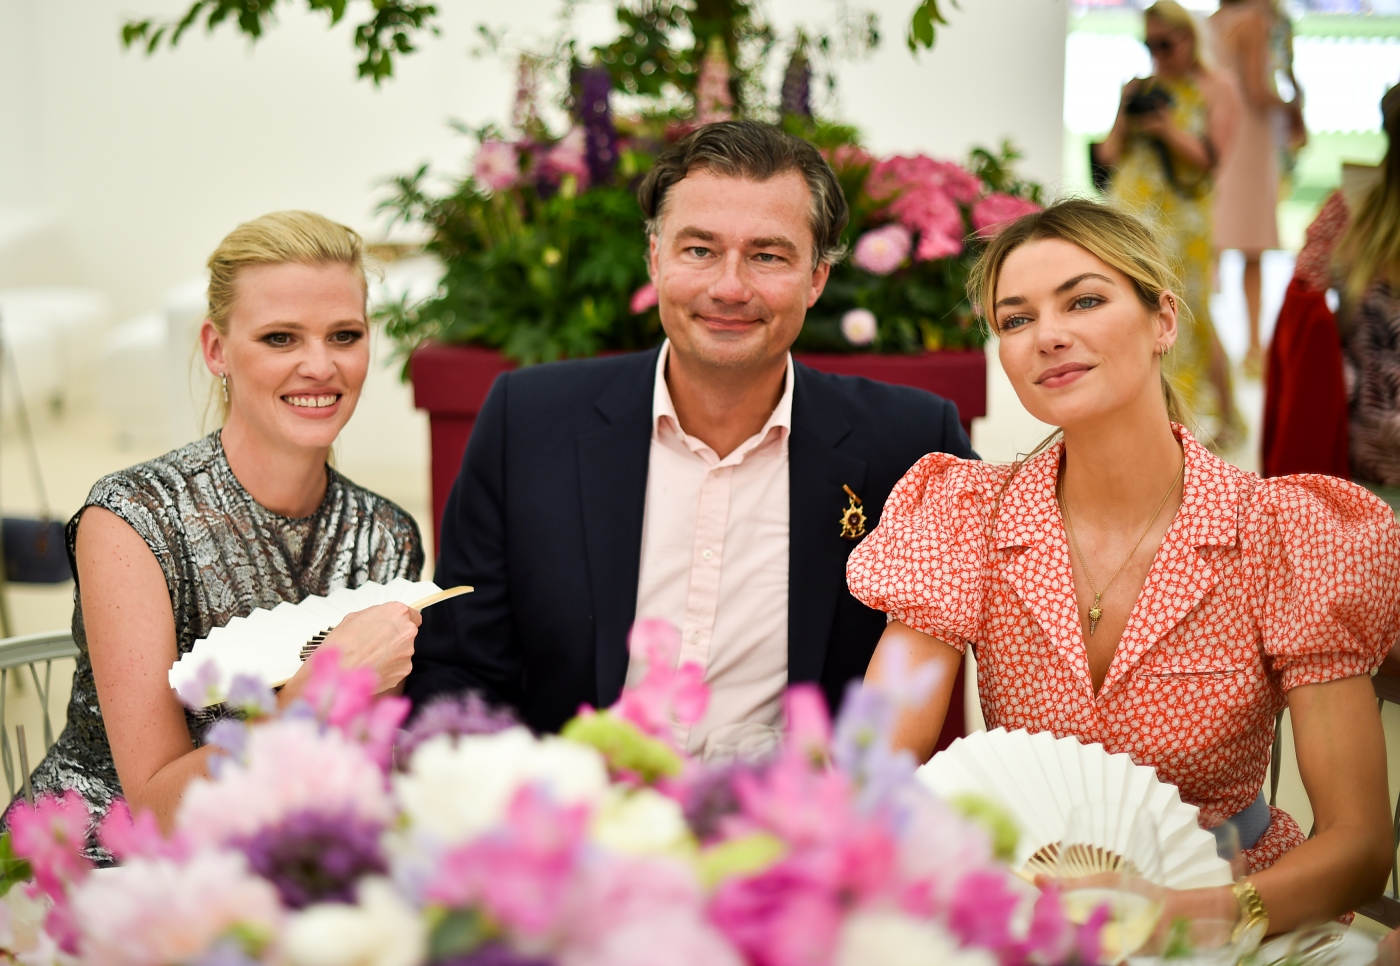 [ Luxe ] Lara Stone, Laurent Feniou, Jessica Hart,  the Cartier Queen's Cup Polo at Guards Polo Club